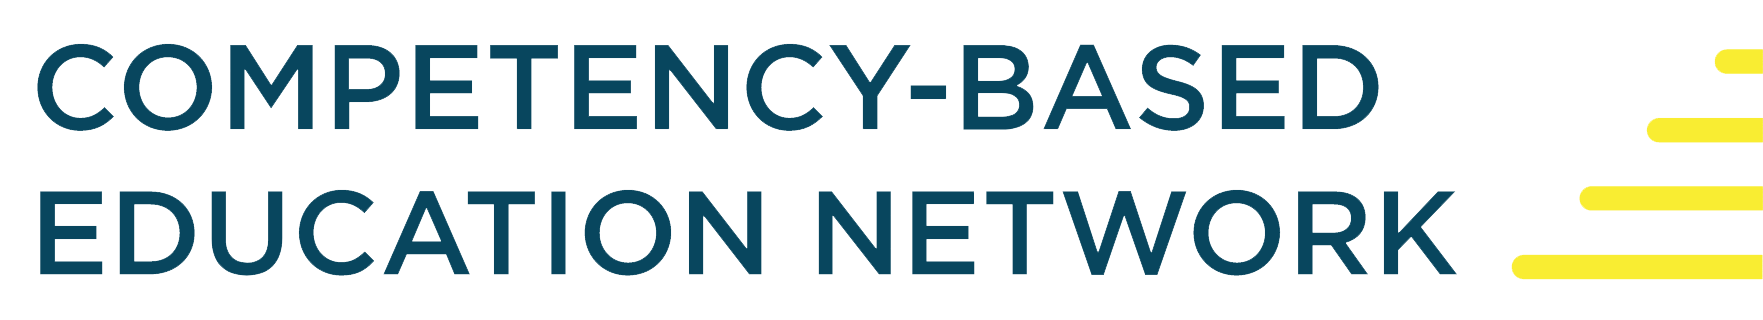 Competency-Based Education Network Logo